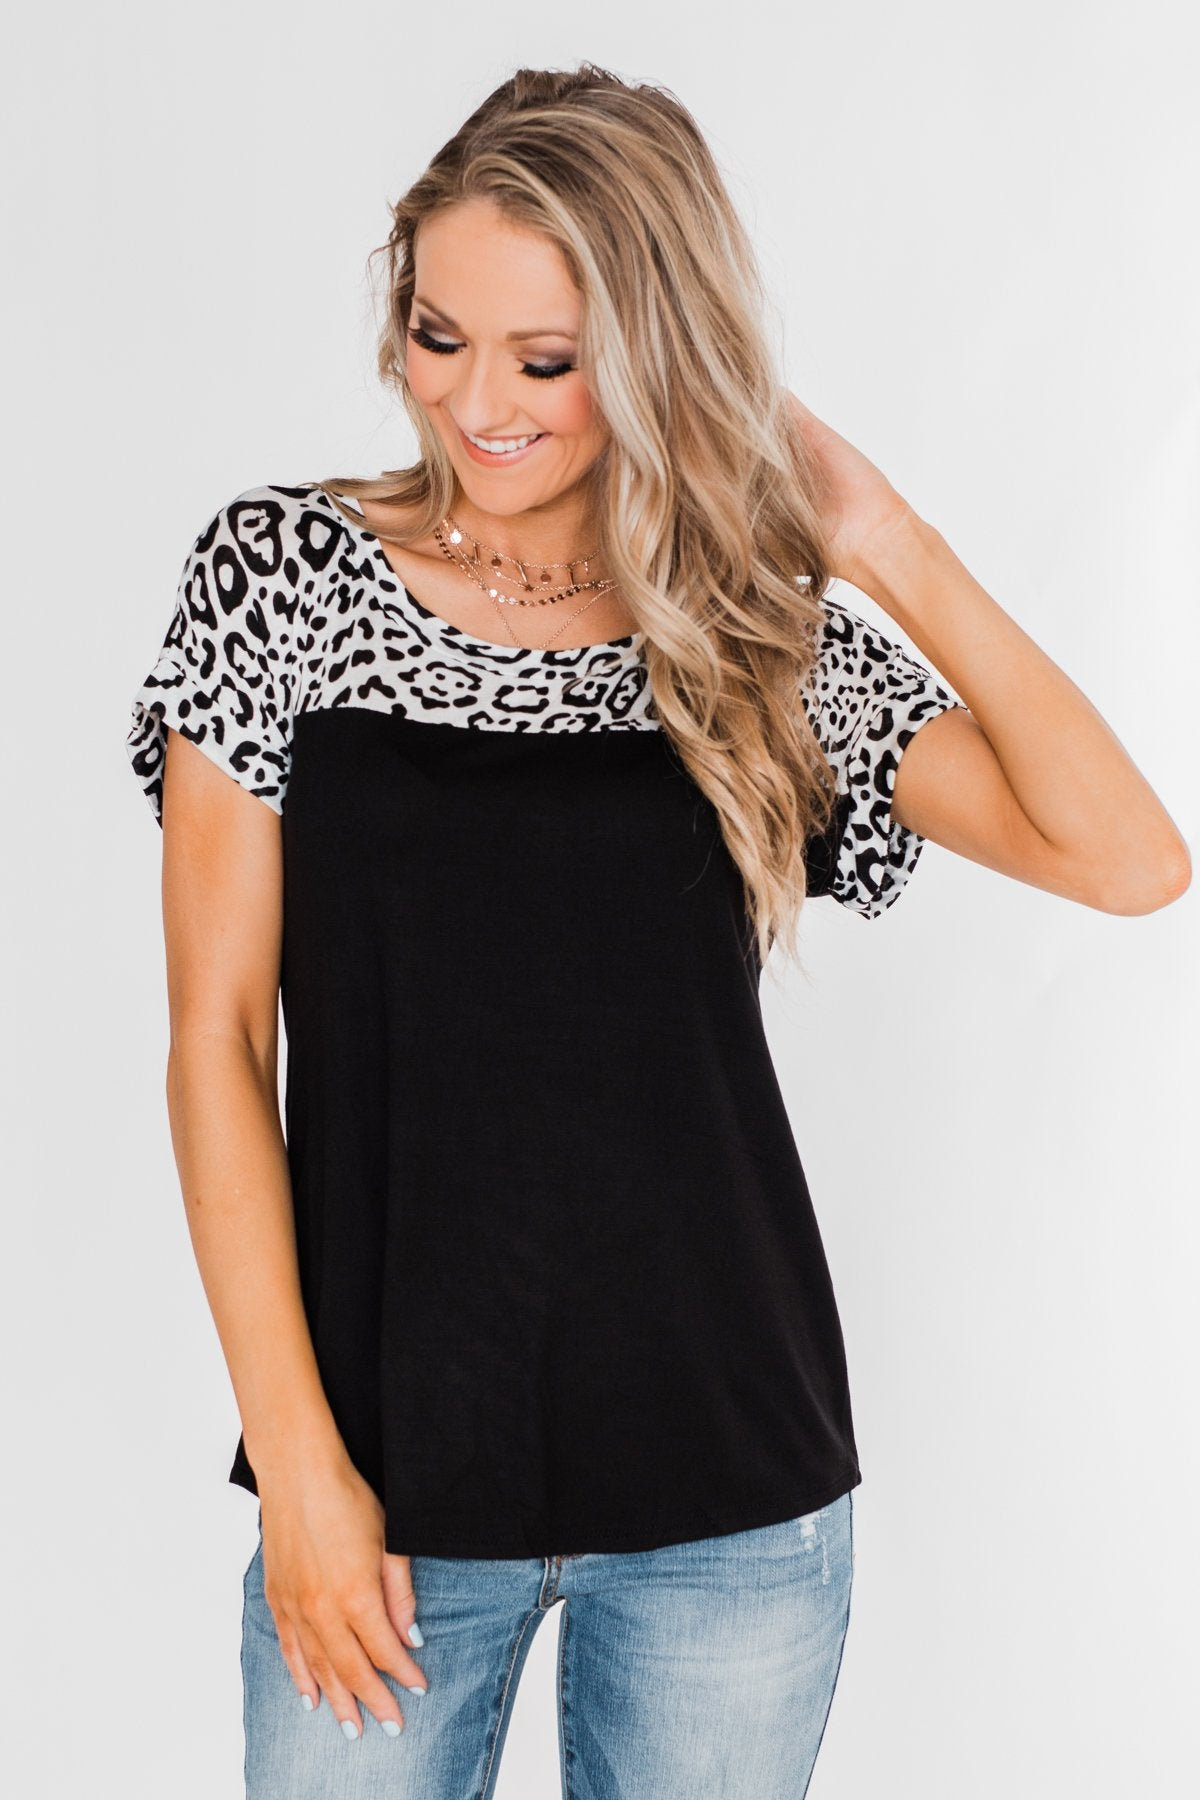 I Need a Good Time Leopard Top- Black